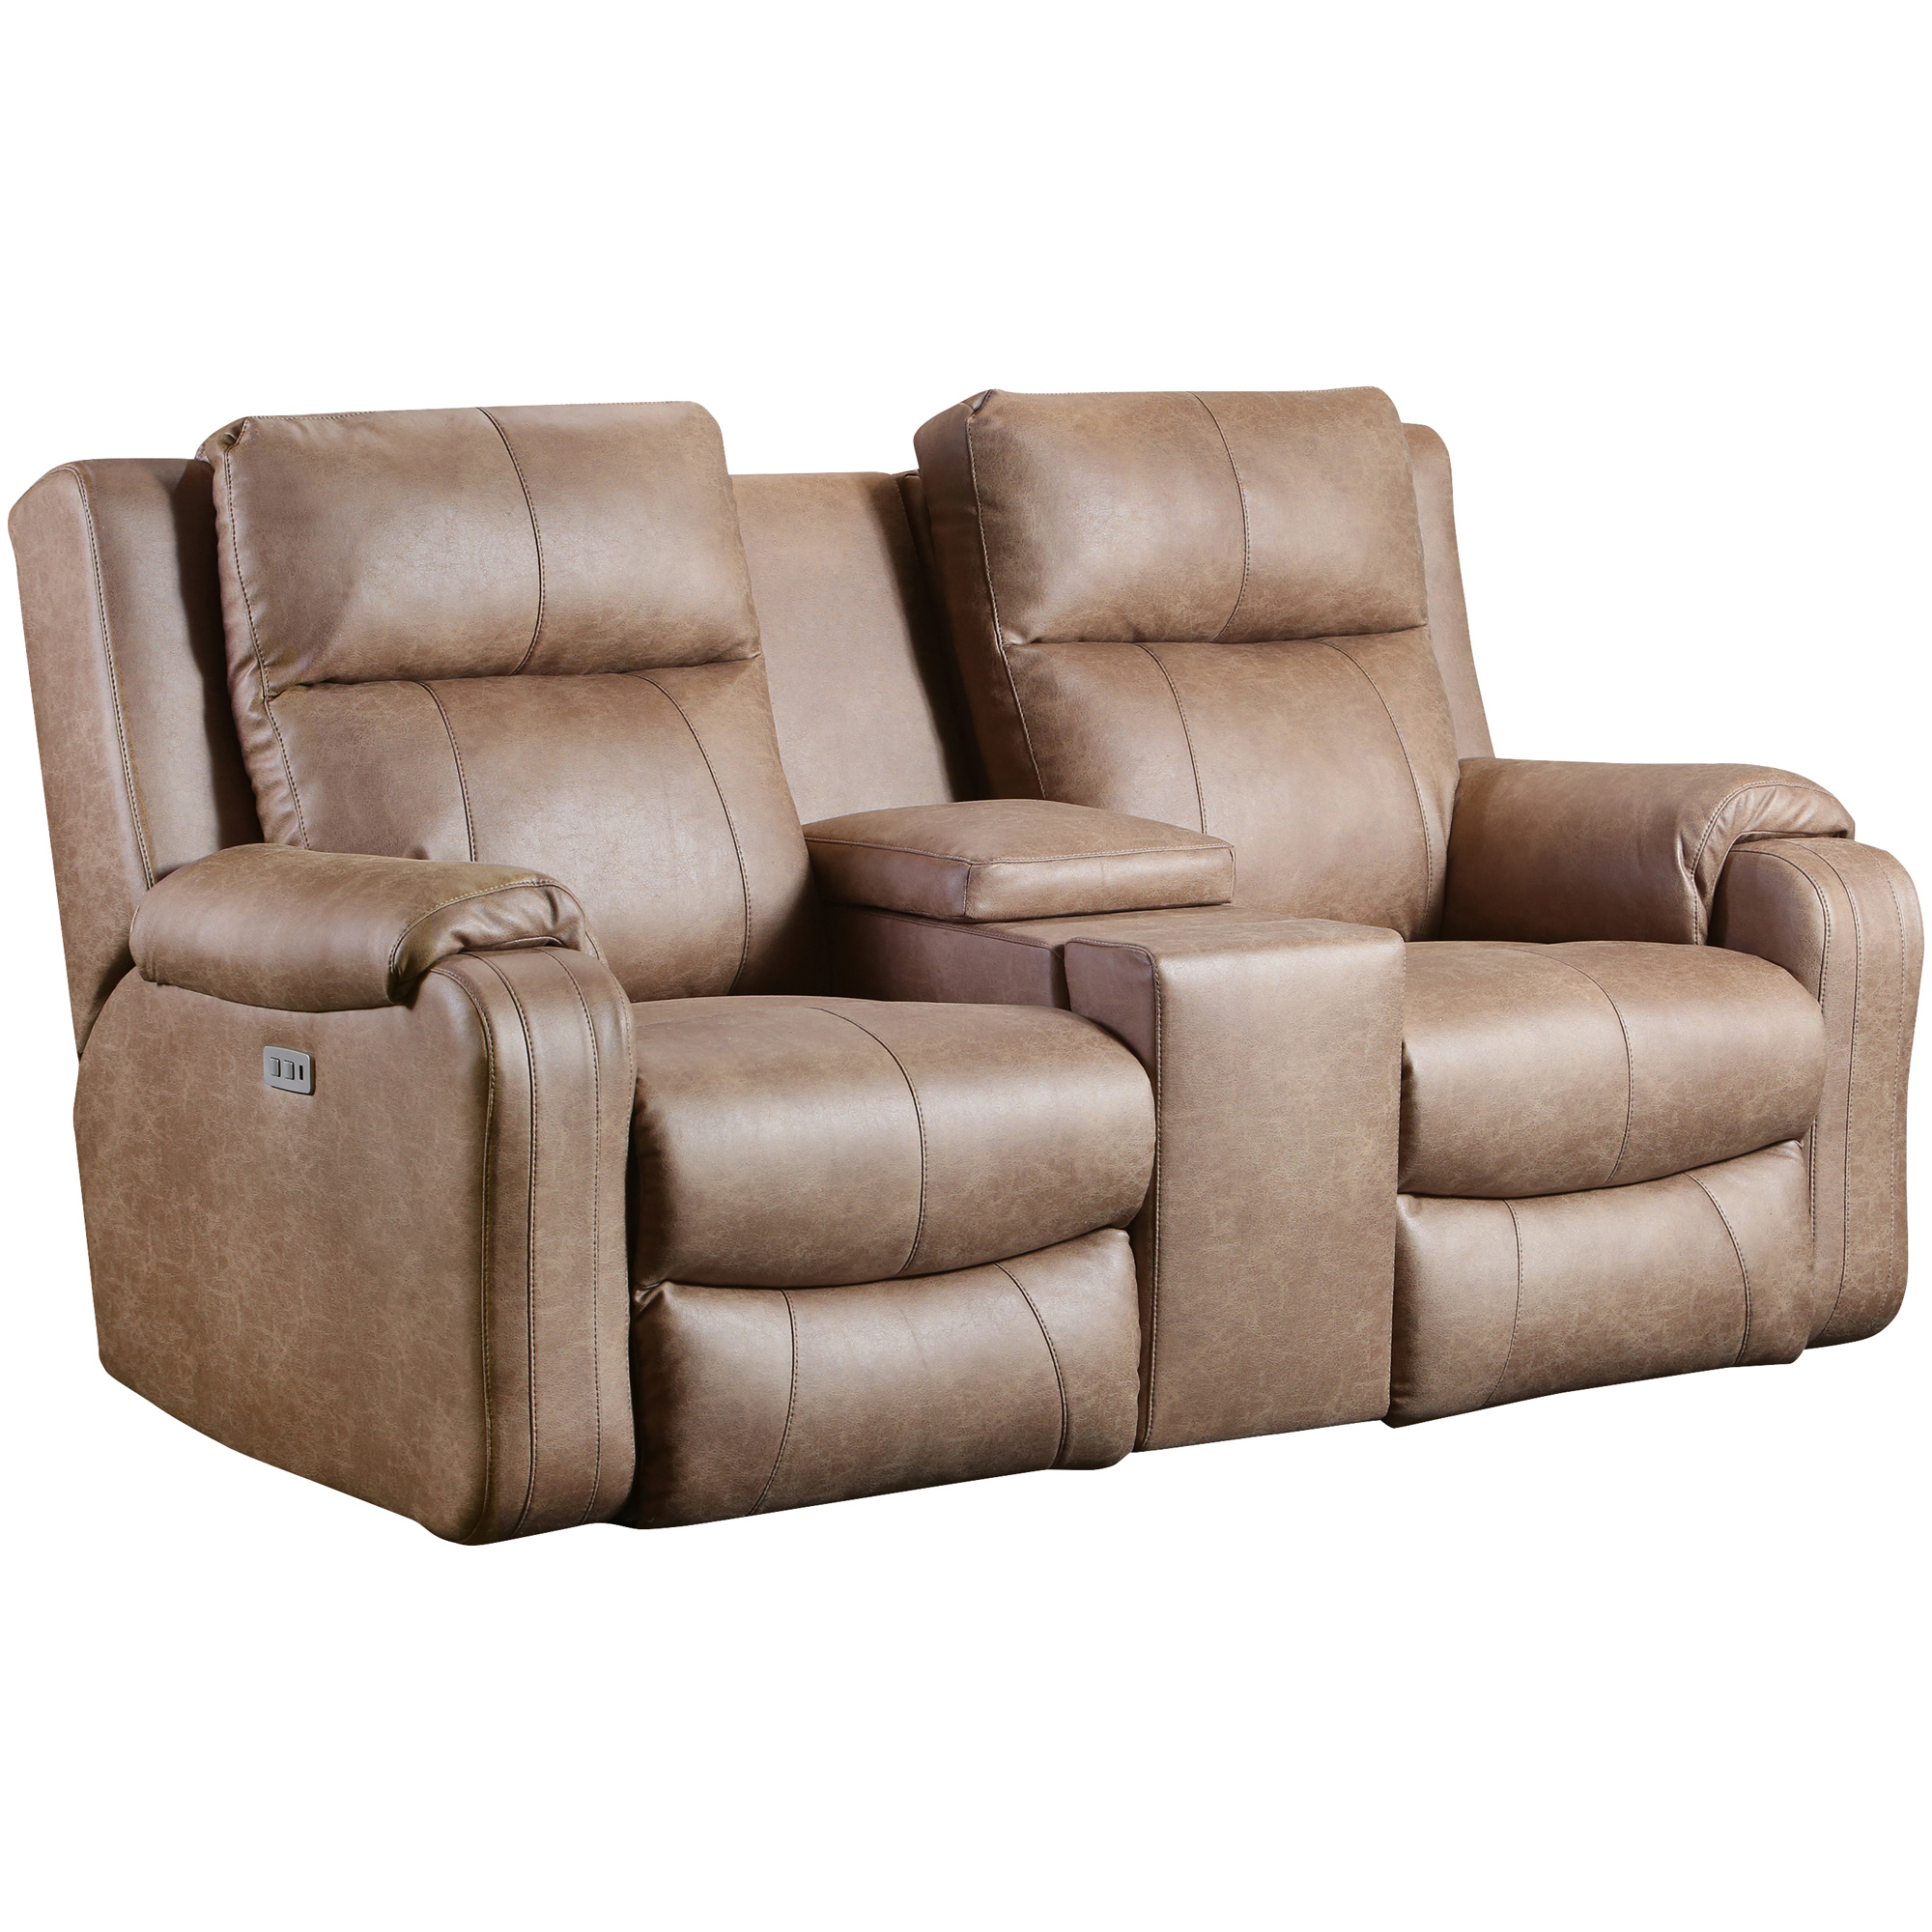 Southern Motion | Contour Vintage Power+ Reclining Next Level Console Loveseat Sofa